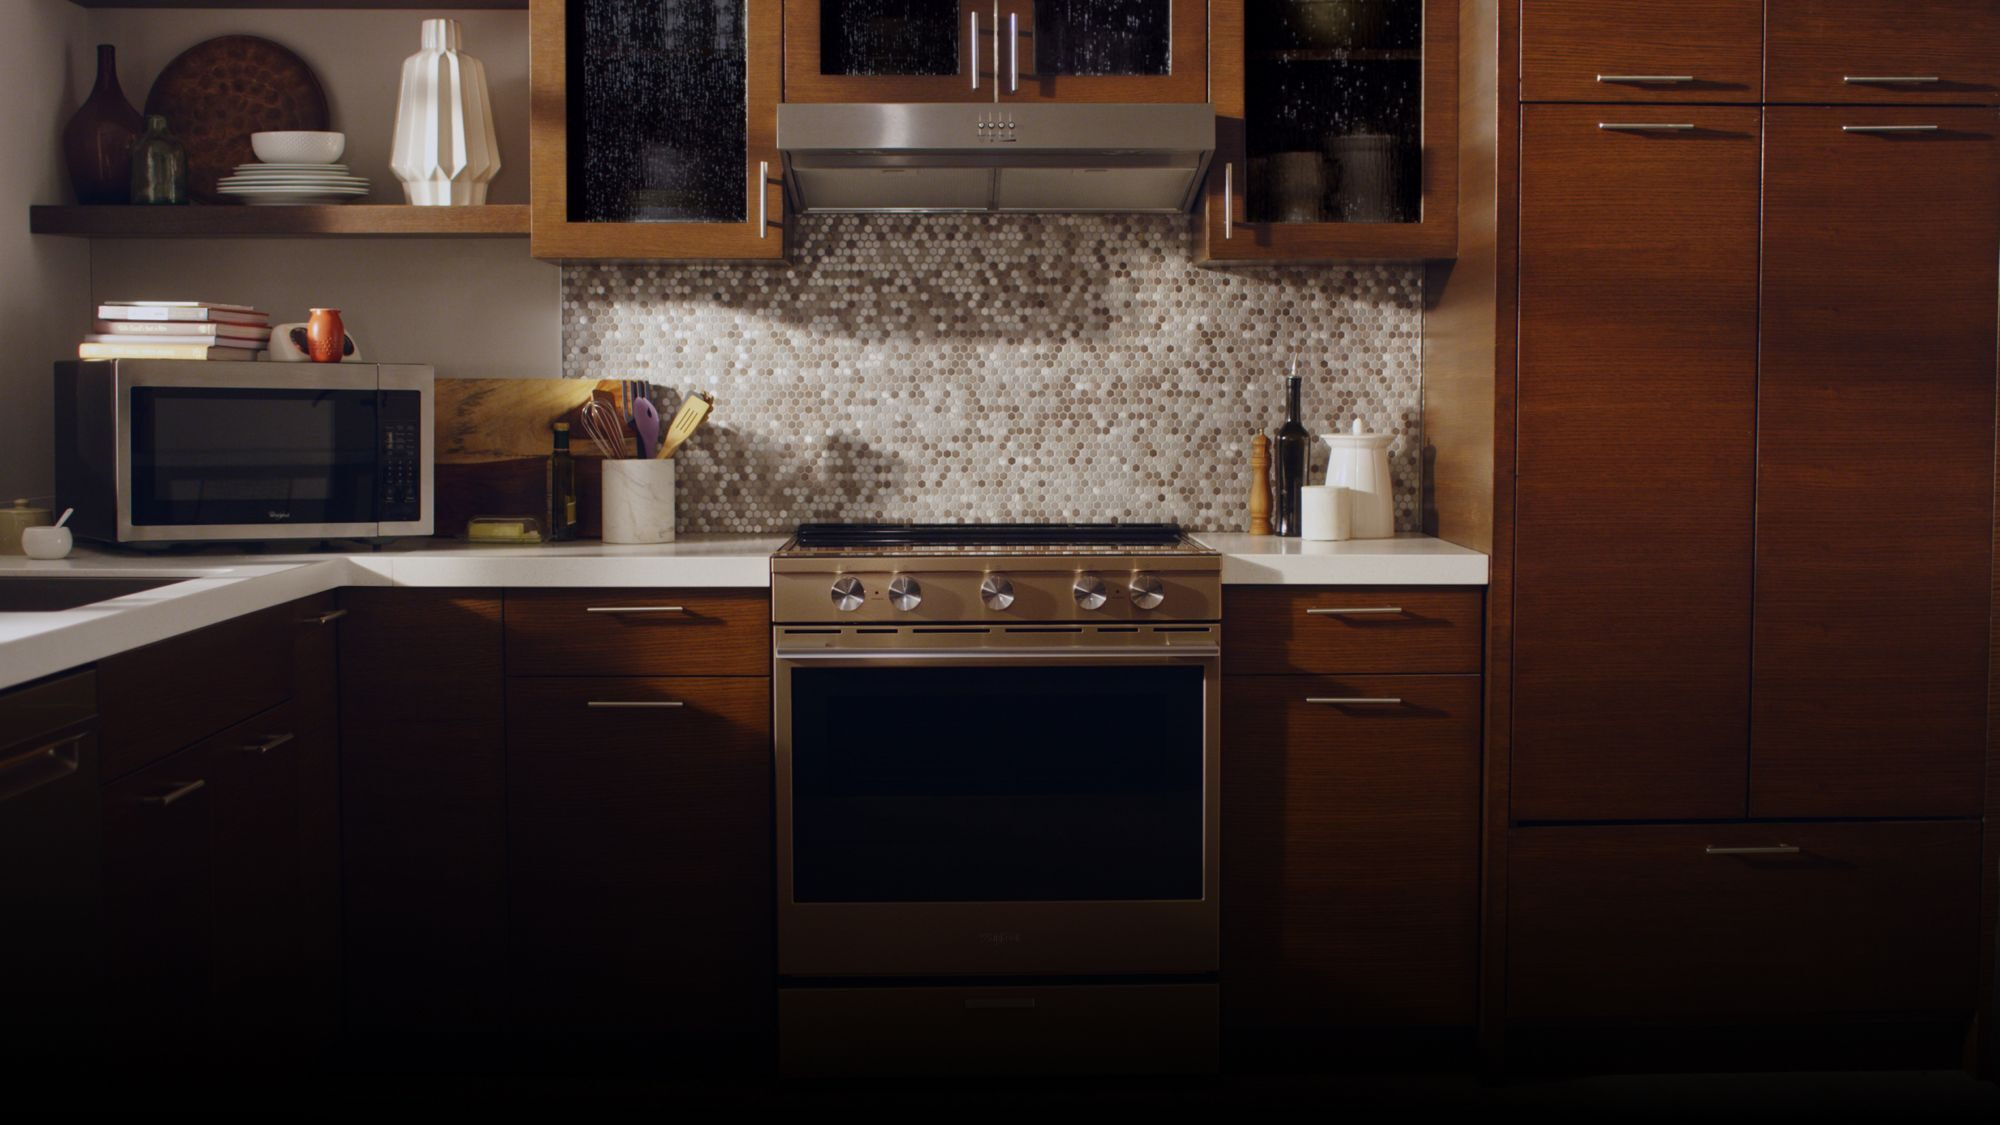 Hoods | Whirlpool on rustic european kitchen, ultra traditional kitchen, retro european kitchen, ultra contemporary kitchen, ultra modern country kitchen, ultra modern white kitchen, country european kitchen, ultra modern office kitchen,